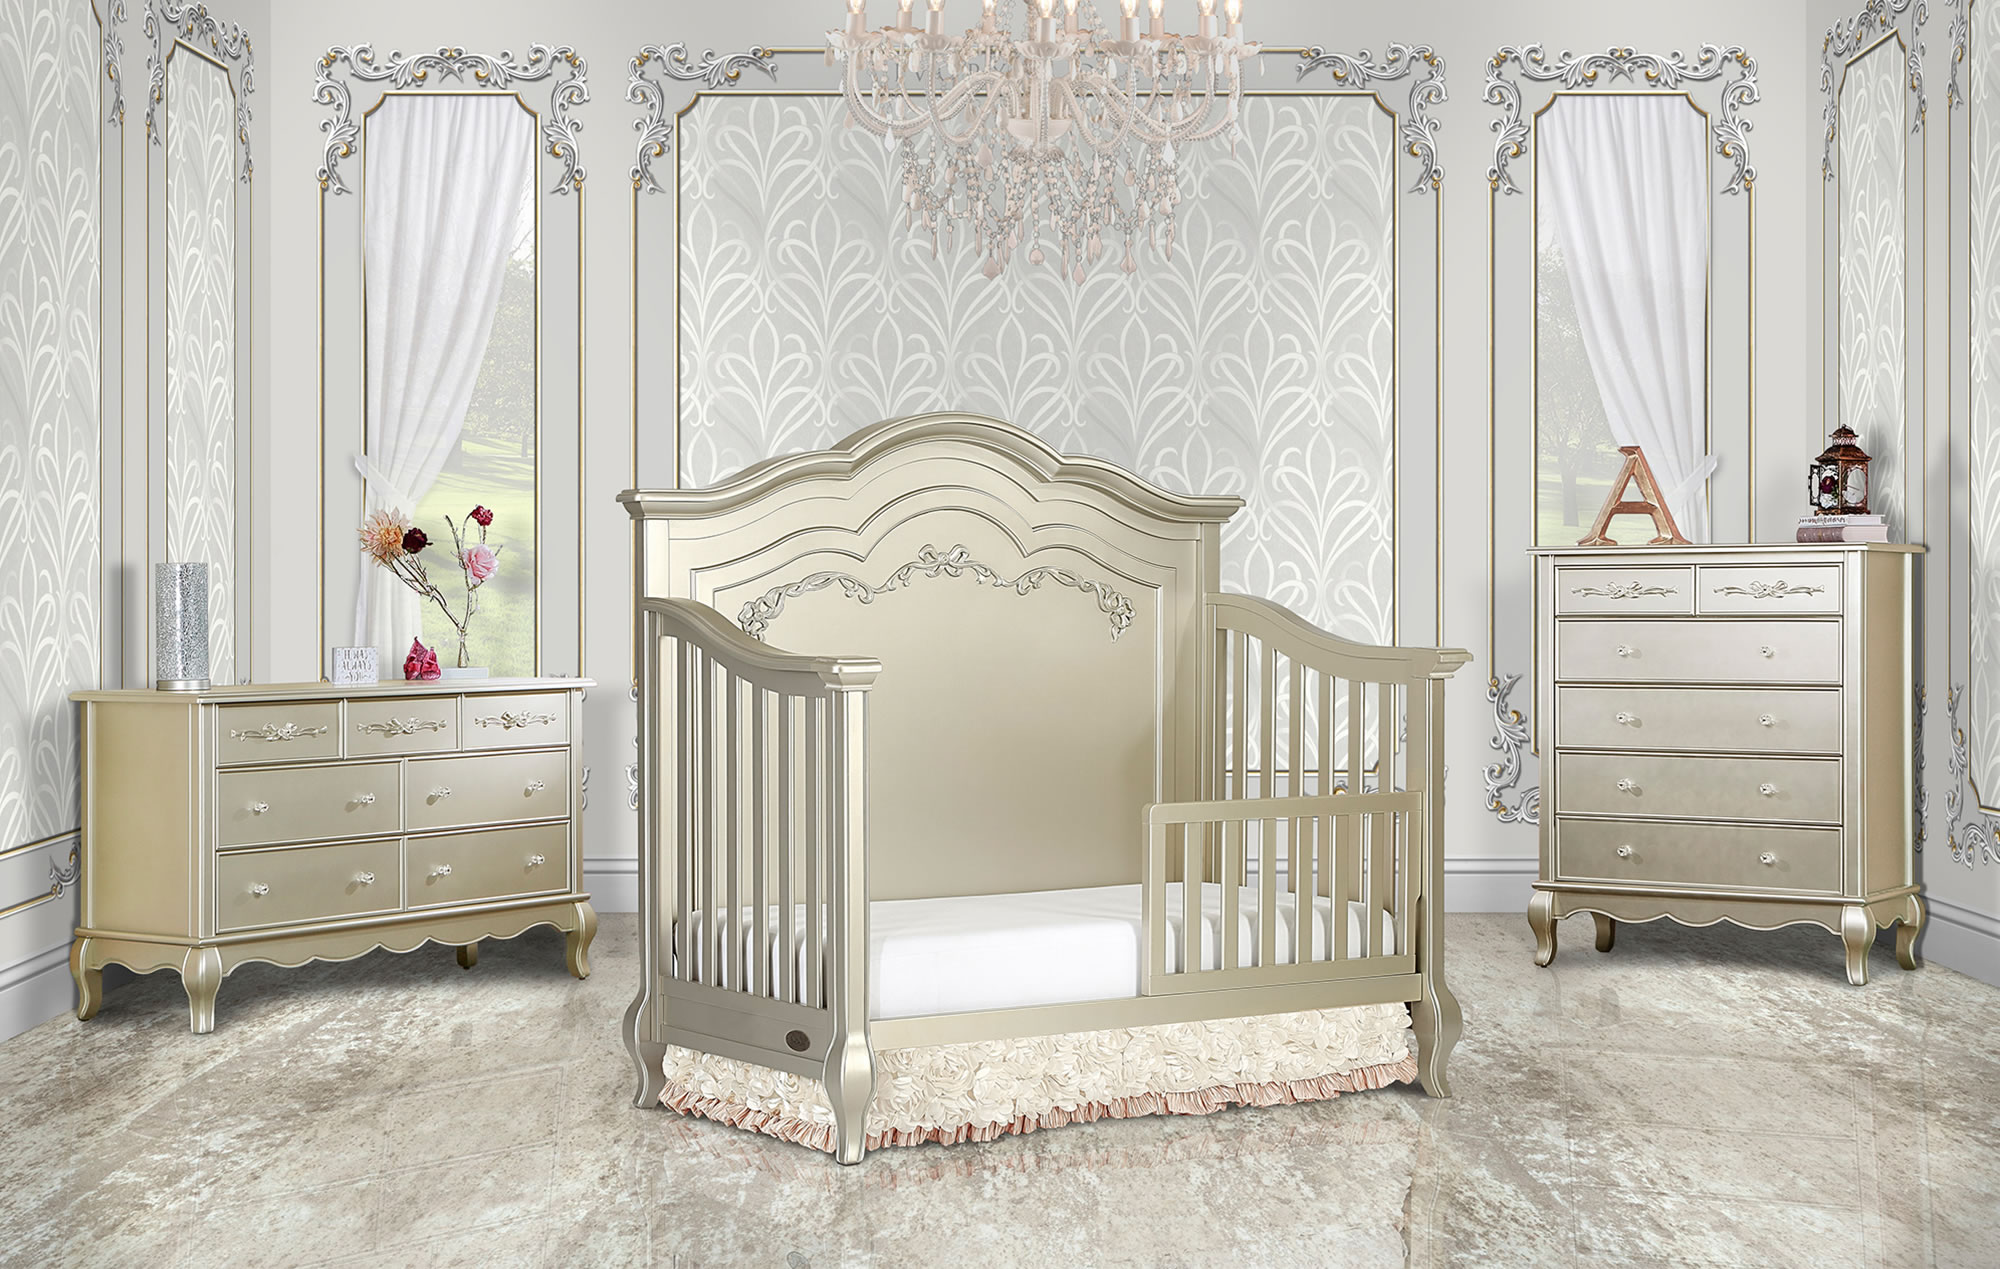 832-GD Aurora Toddler Bed RS1